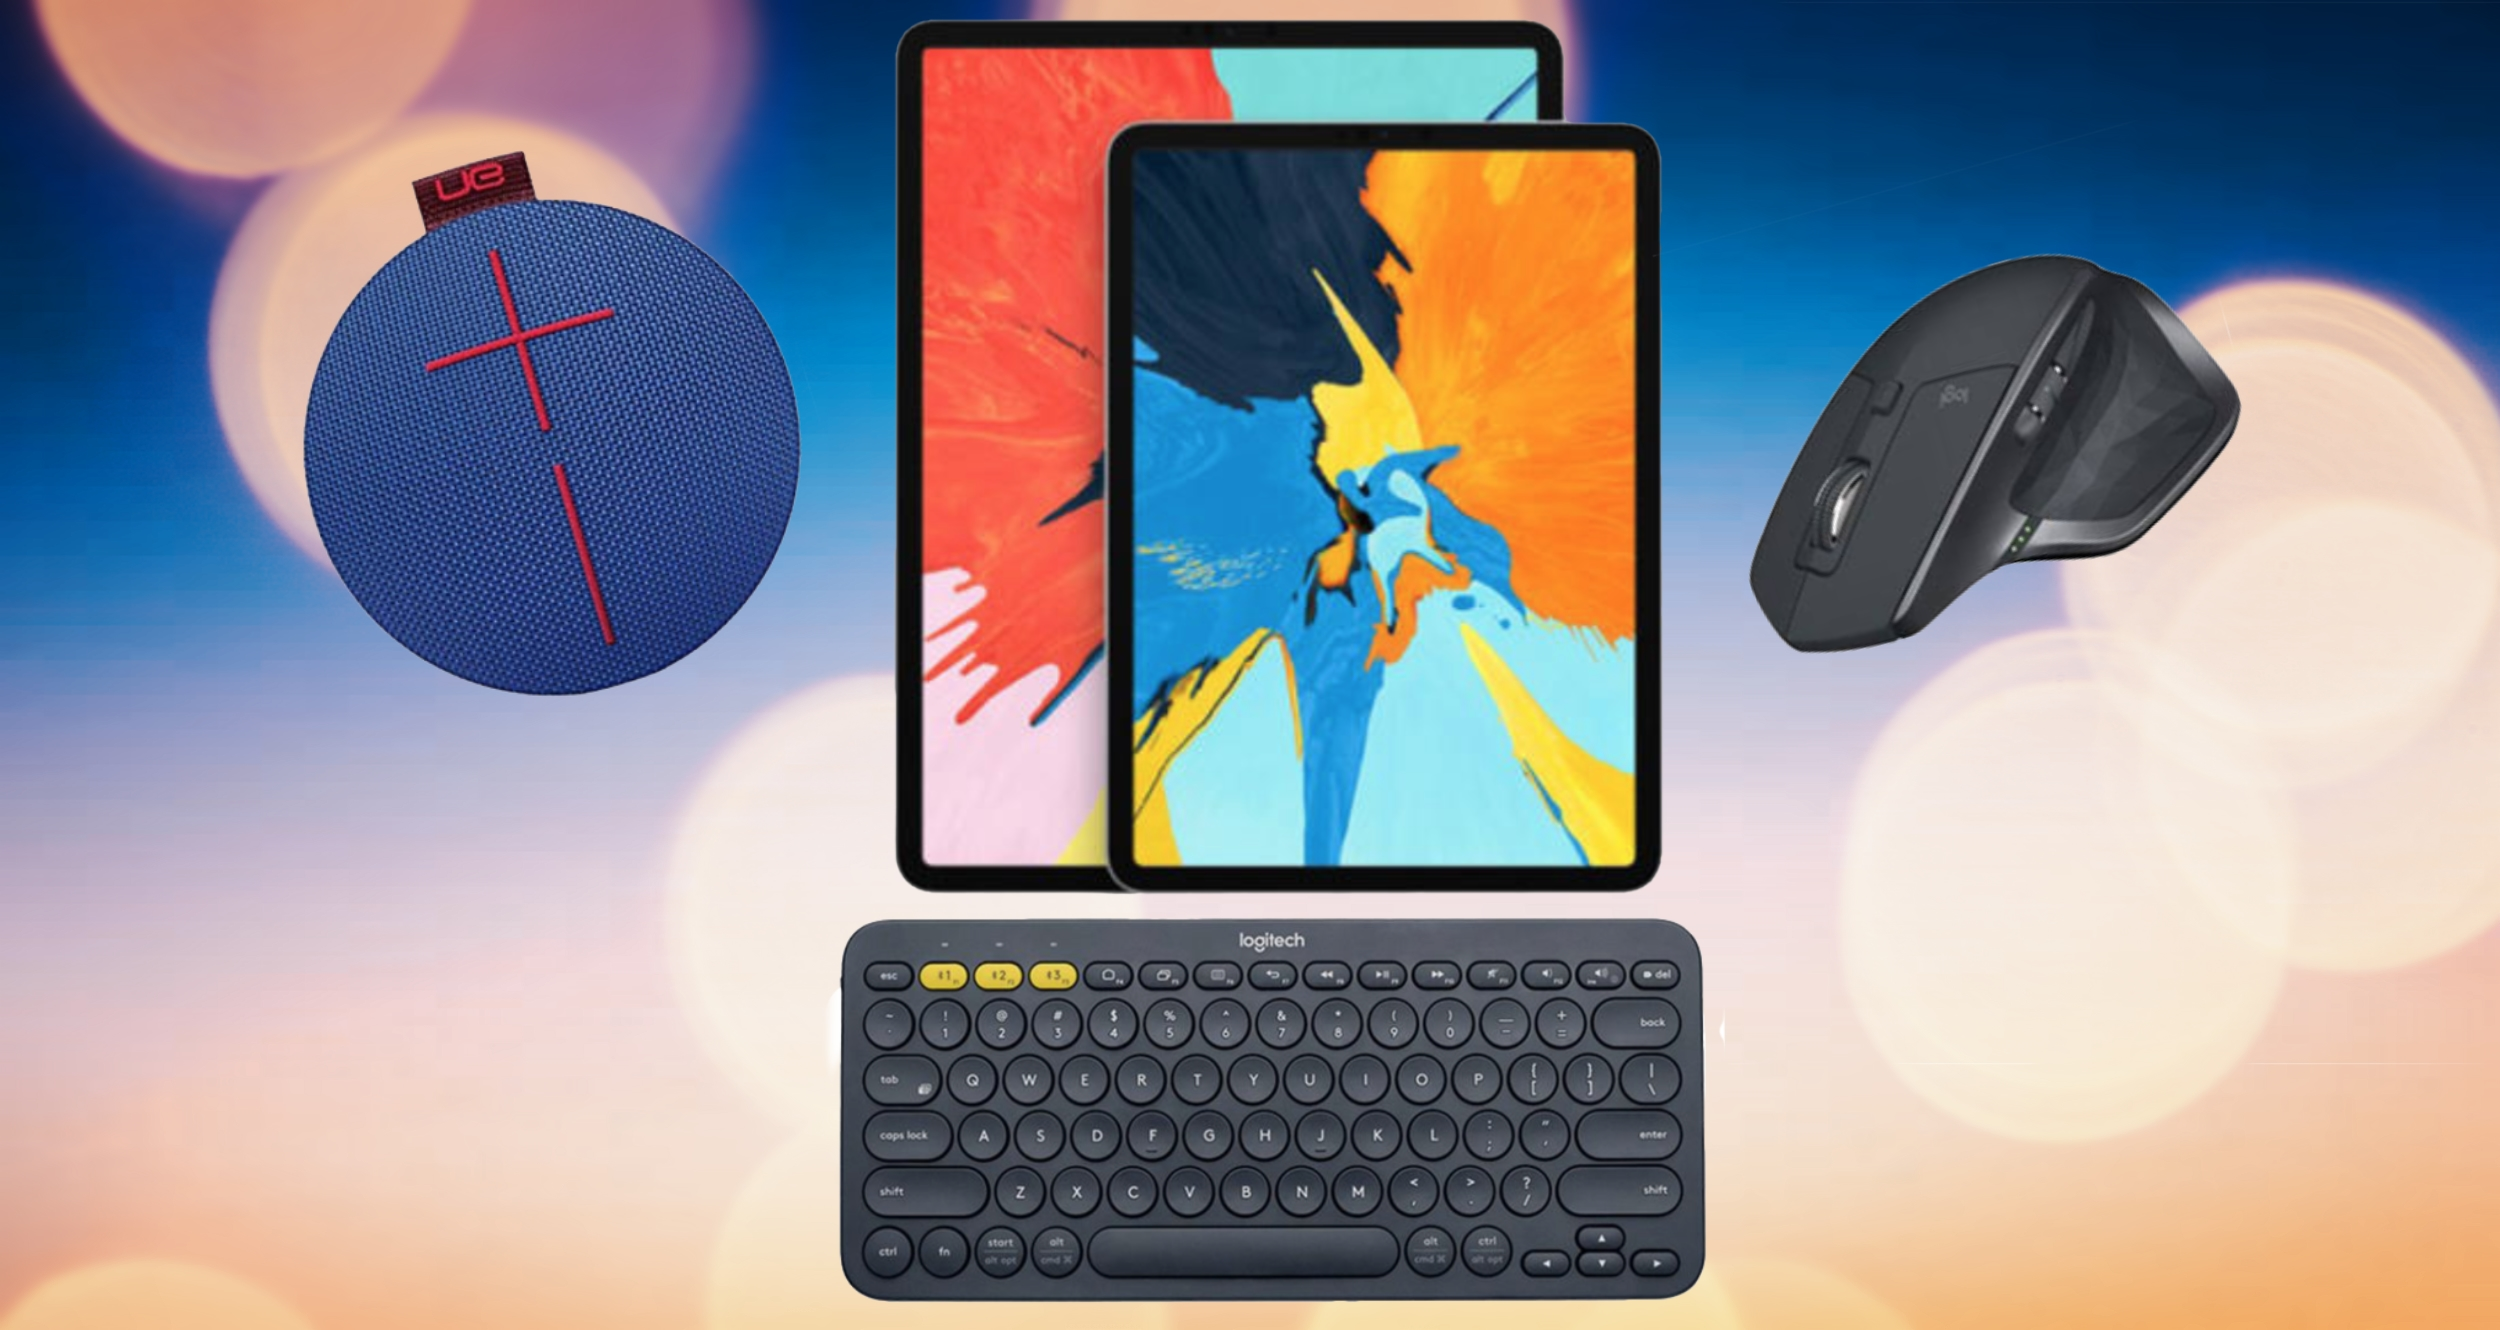 Transform your iPad with Logitech